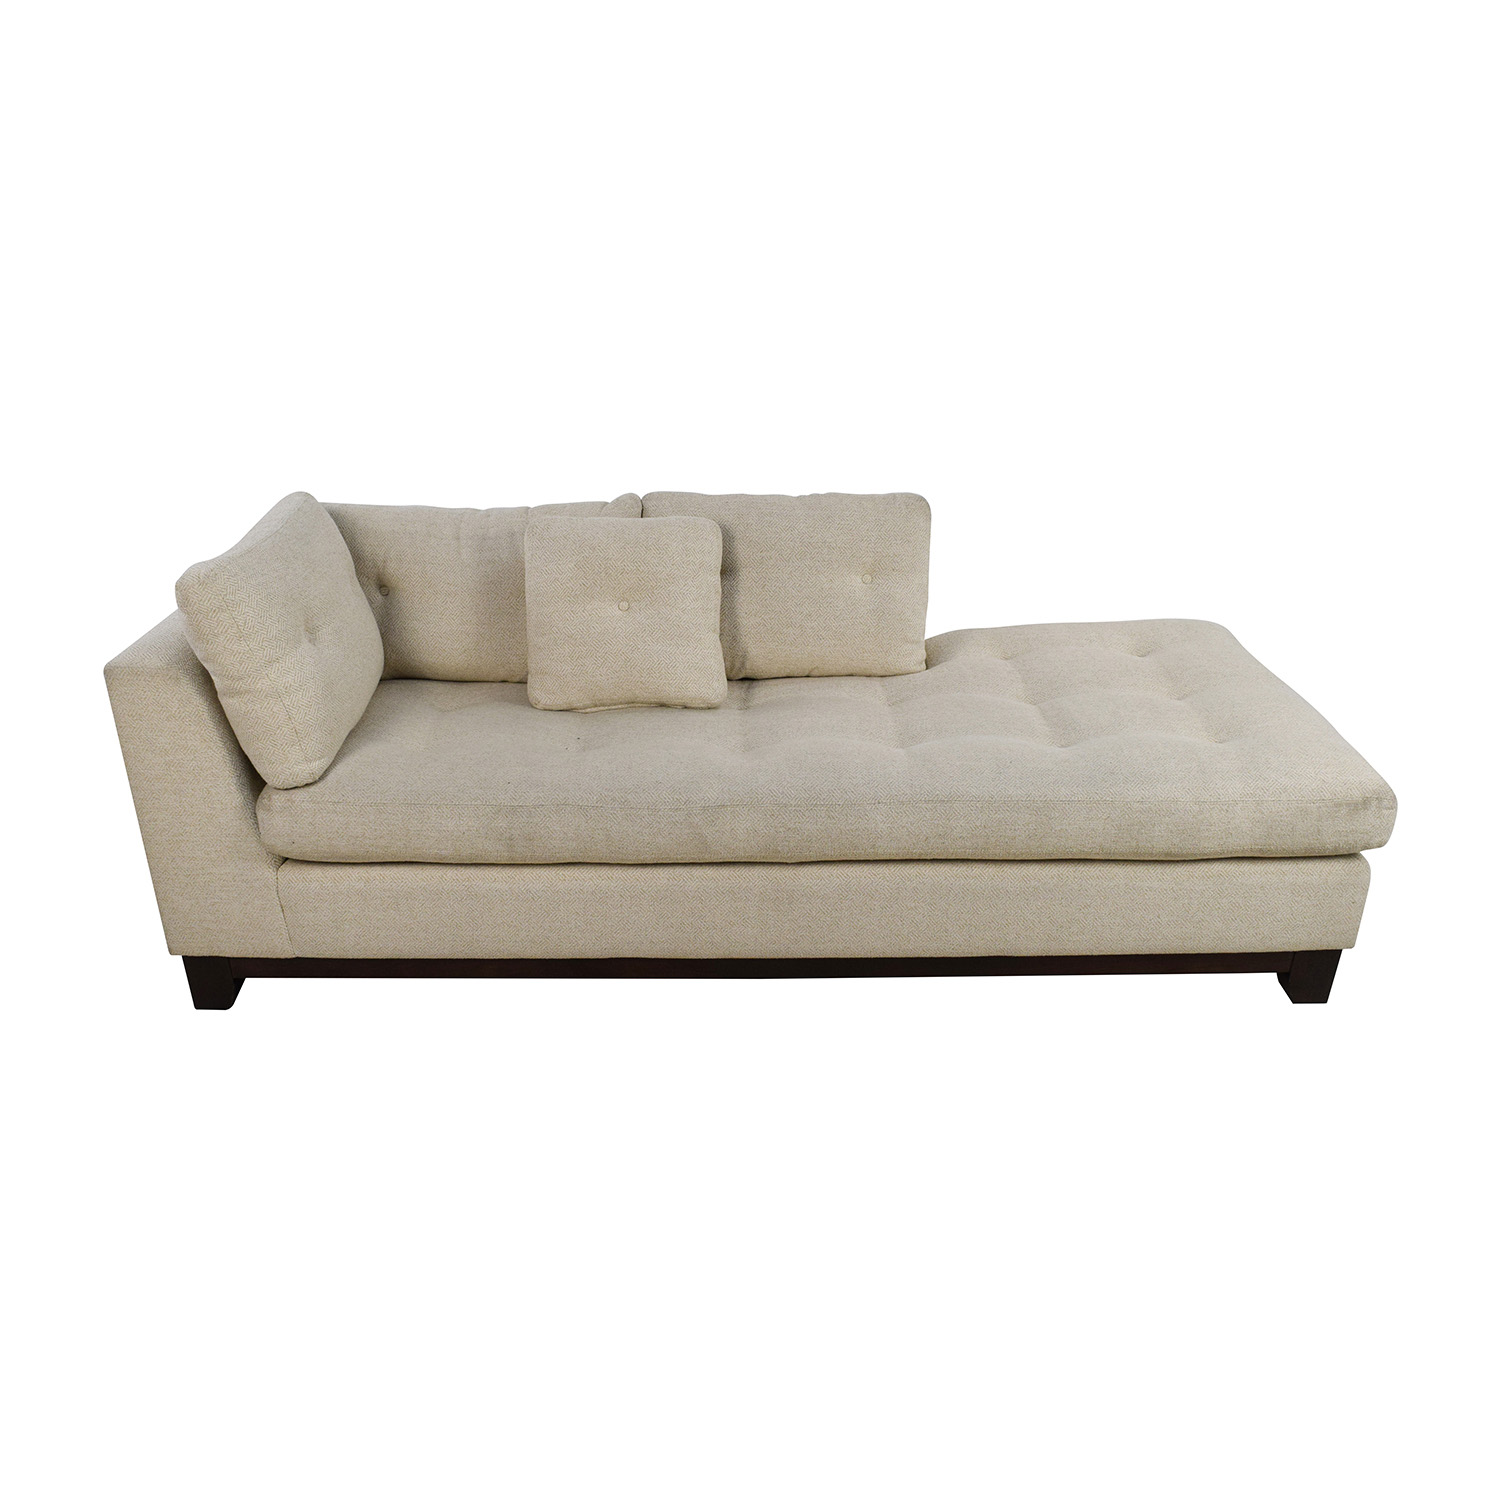 freestyle freestyle tufted natural fabric sofa chaise discount - Chaise Discount